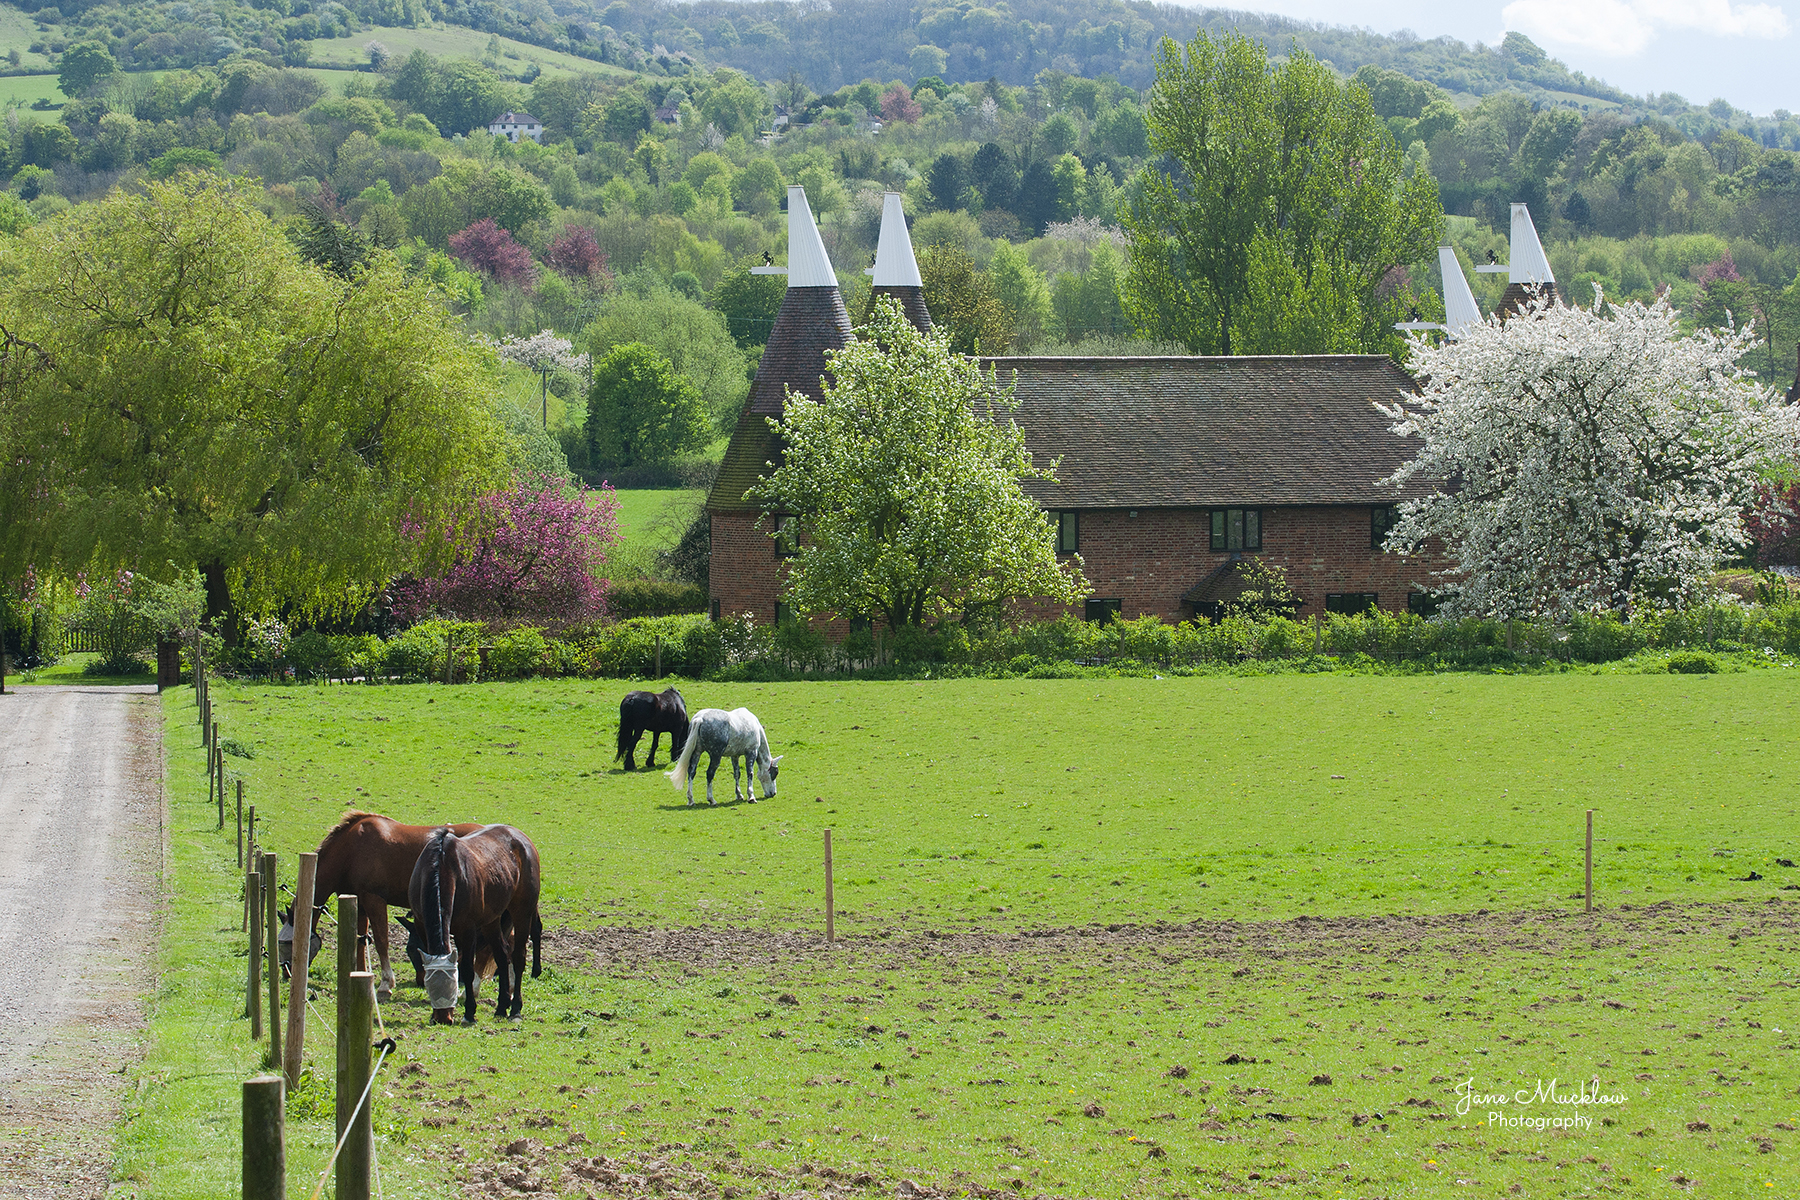 Photo of Filston Oasts and Spring blossom, by Jane Mucklow